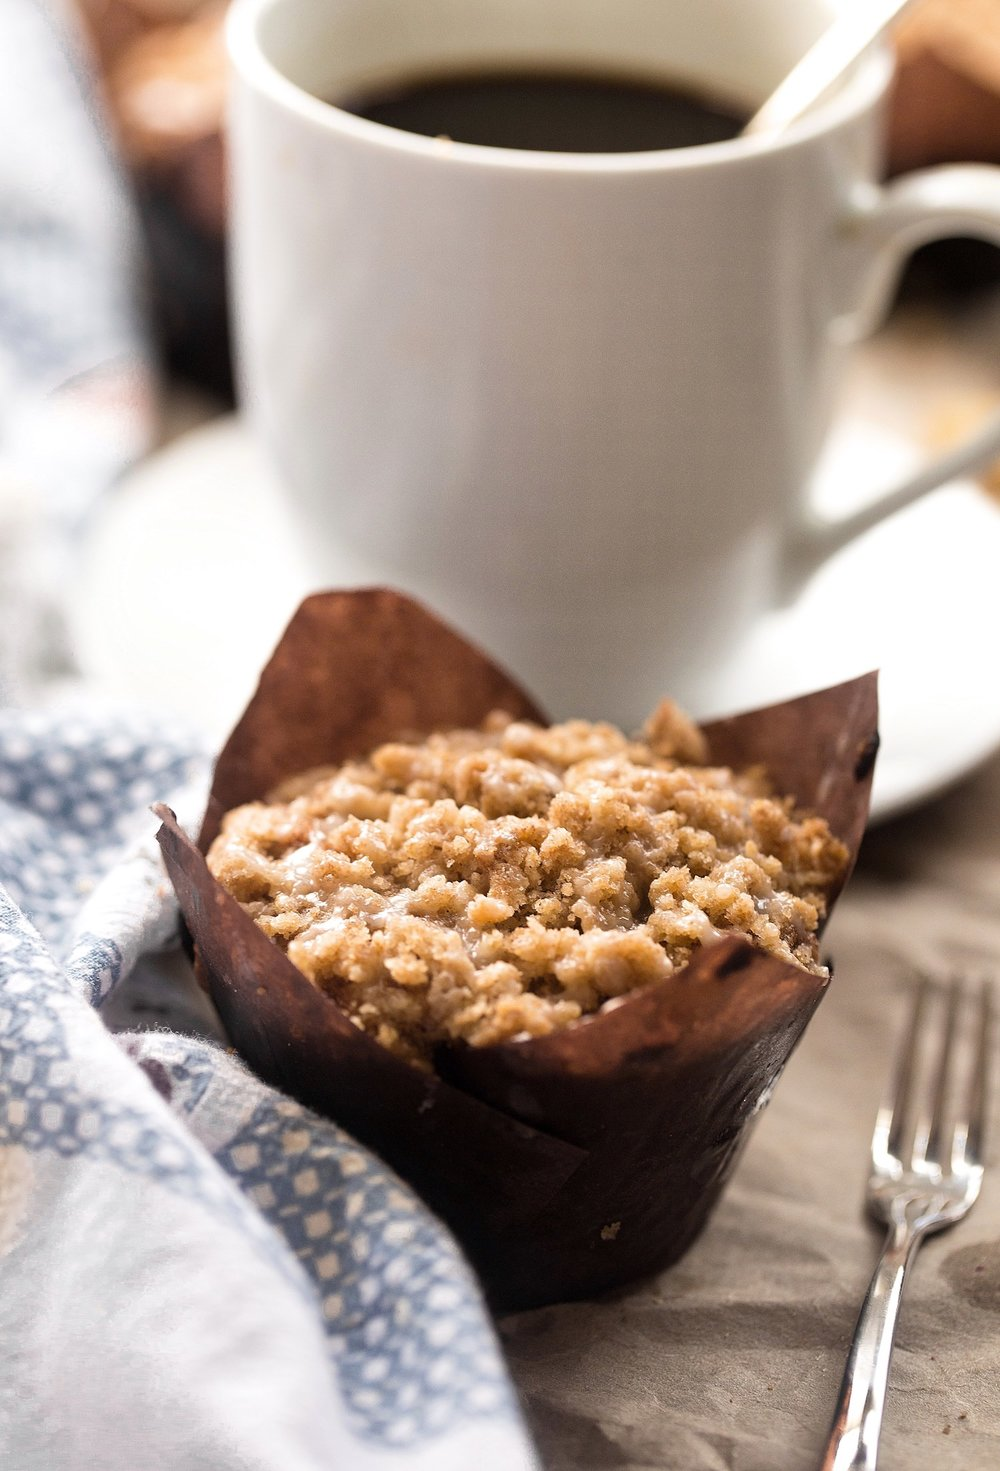 Honey Glazed Apple Crumb Muffins: soft, fluffy, moist muffins packed with apples and topped with a tasty crumble and honey glaze. Video Included! | TrufflesandTrends.com